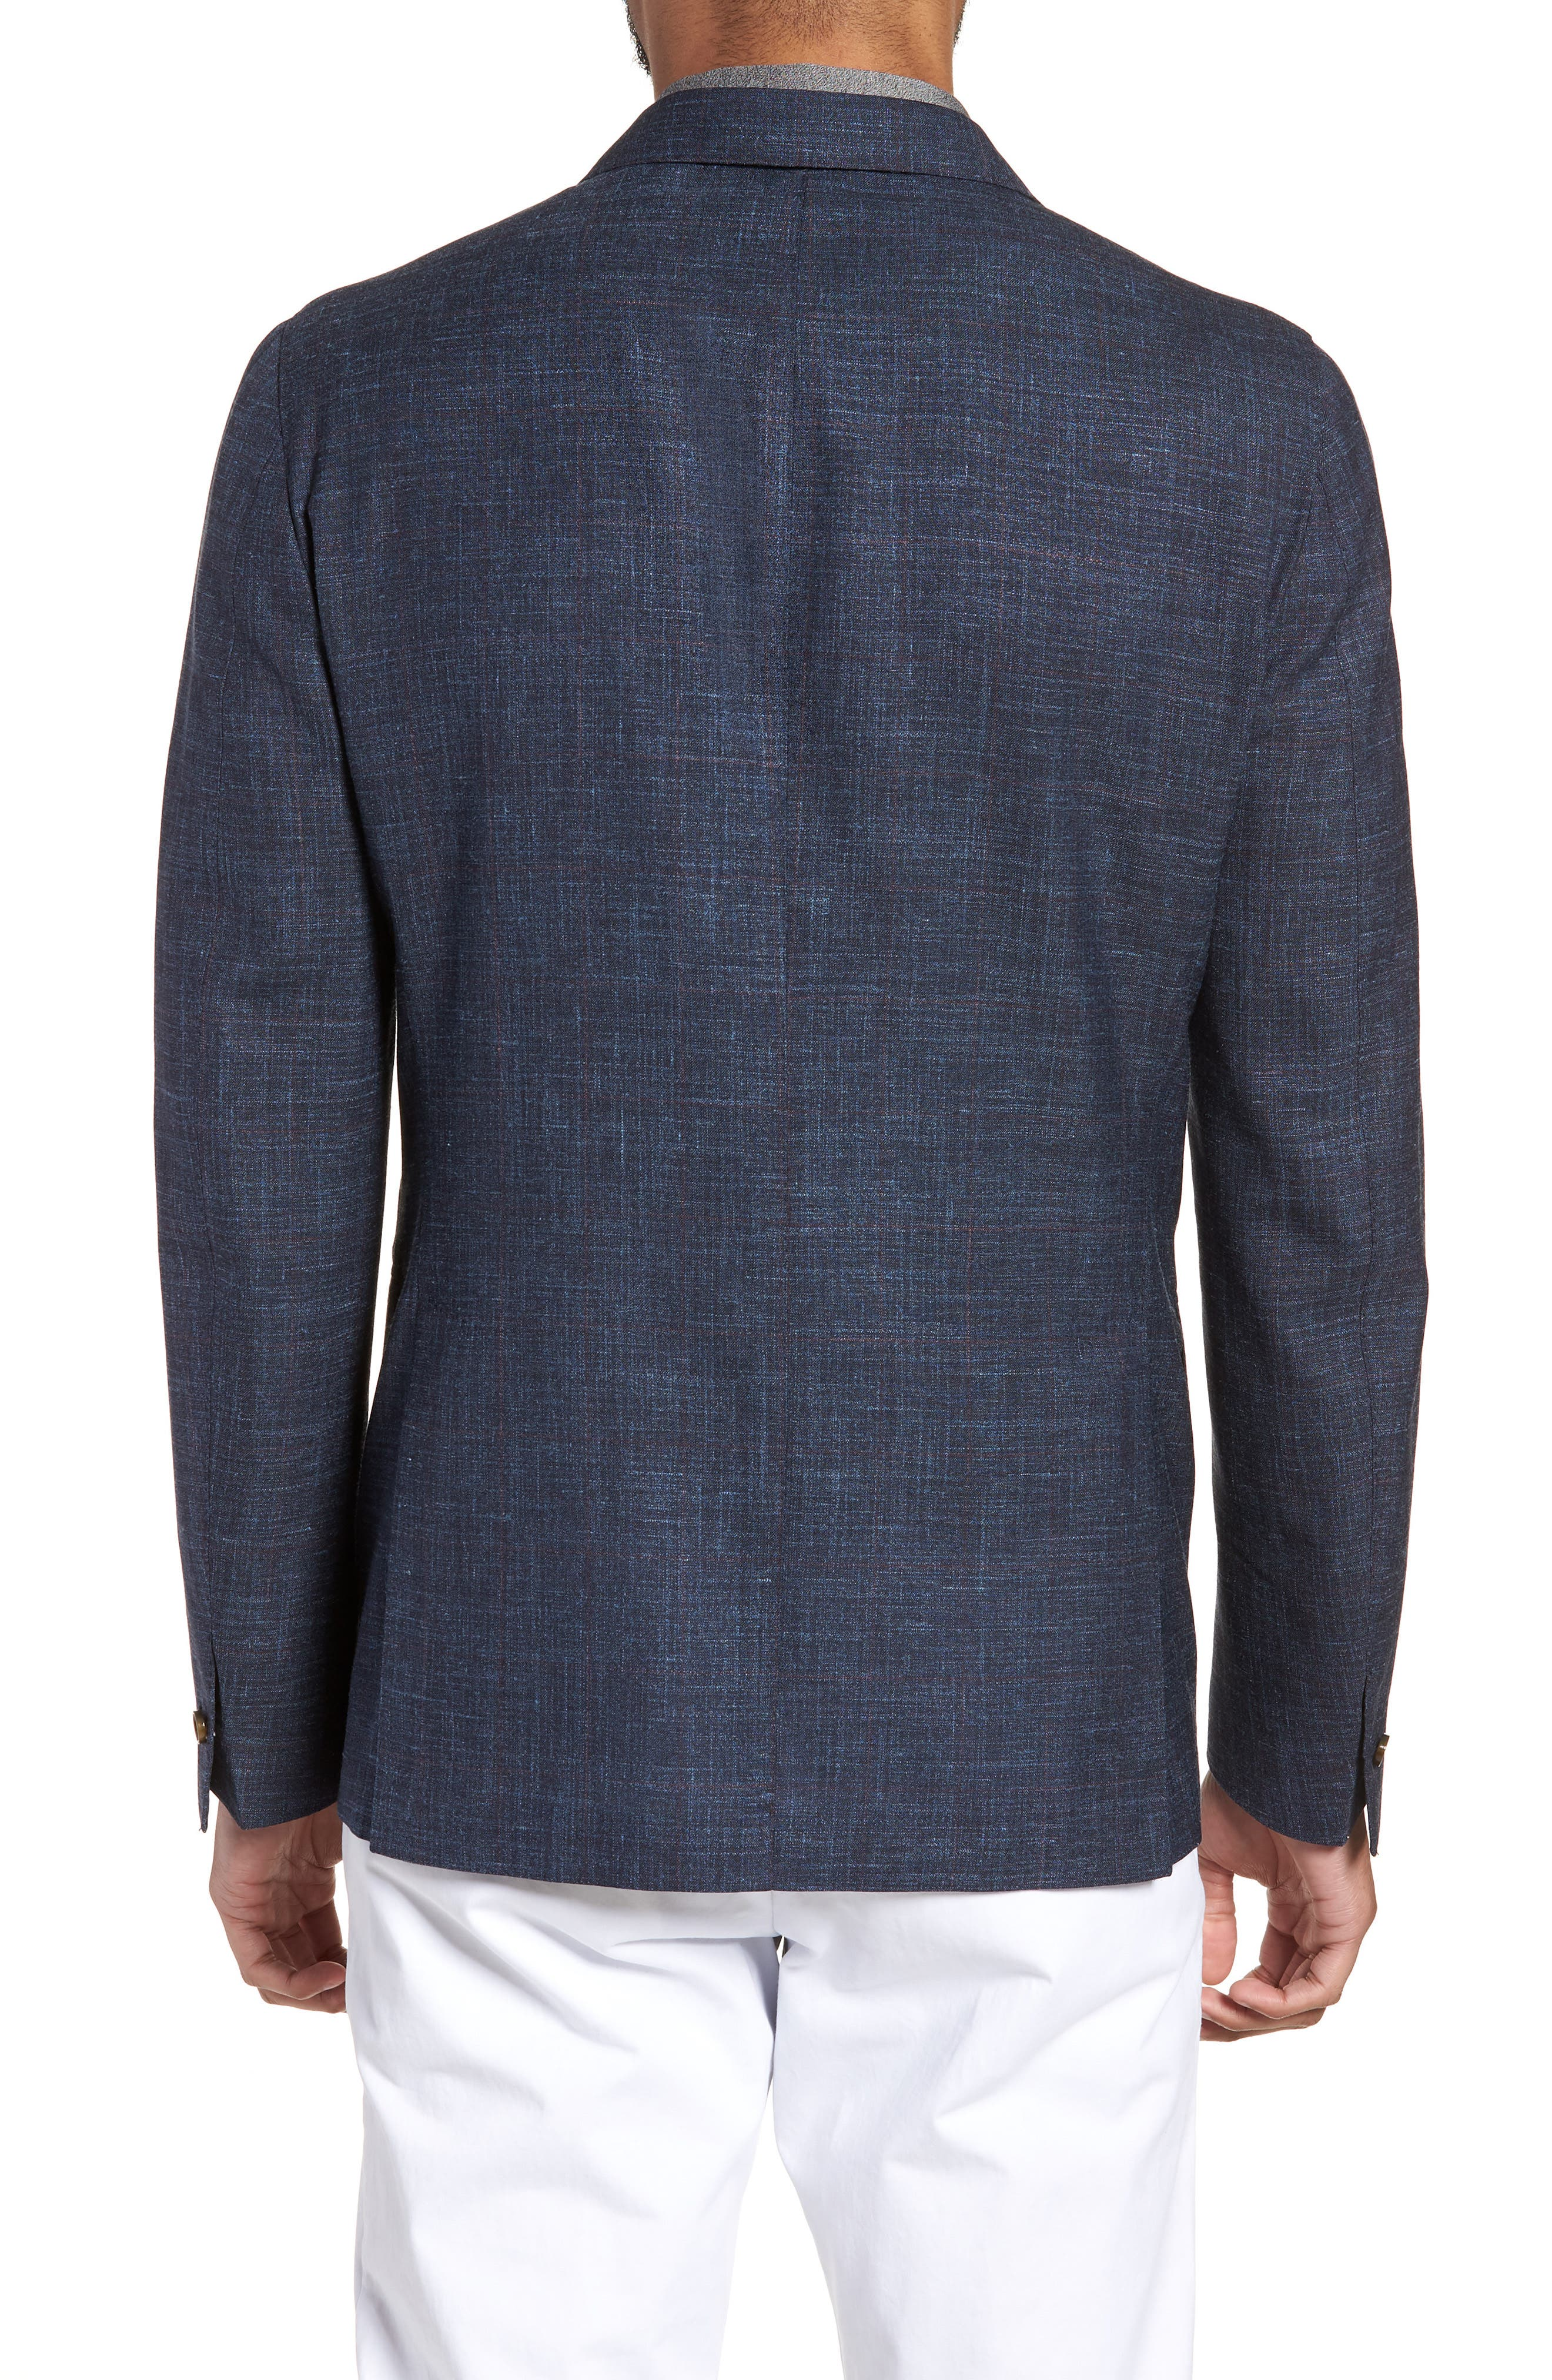 Trim Fit Wool Blend Blazer,                             Alternate thumbnail 2, color,                             Denim Blue